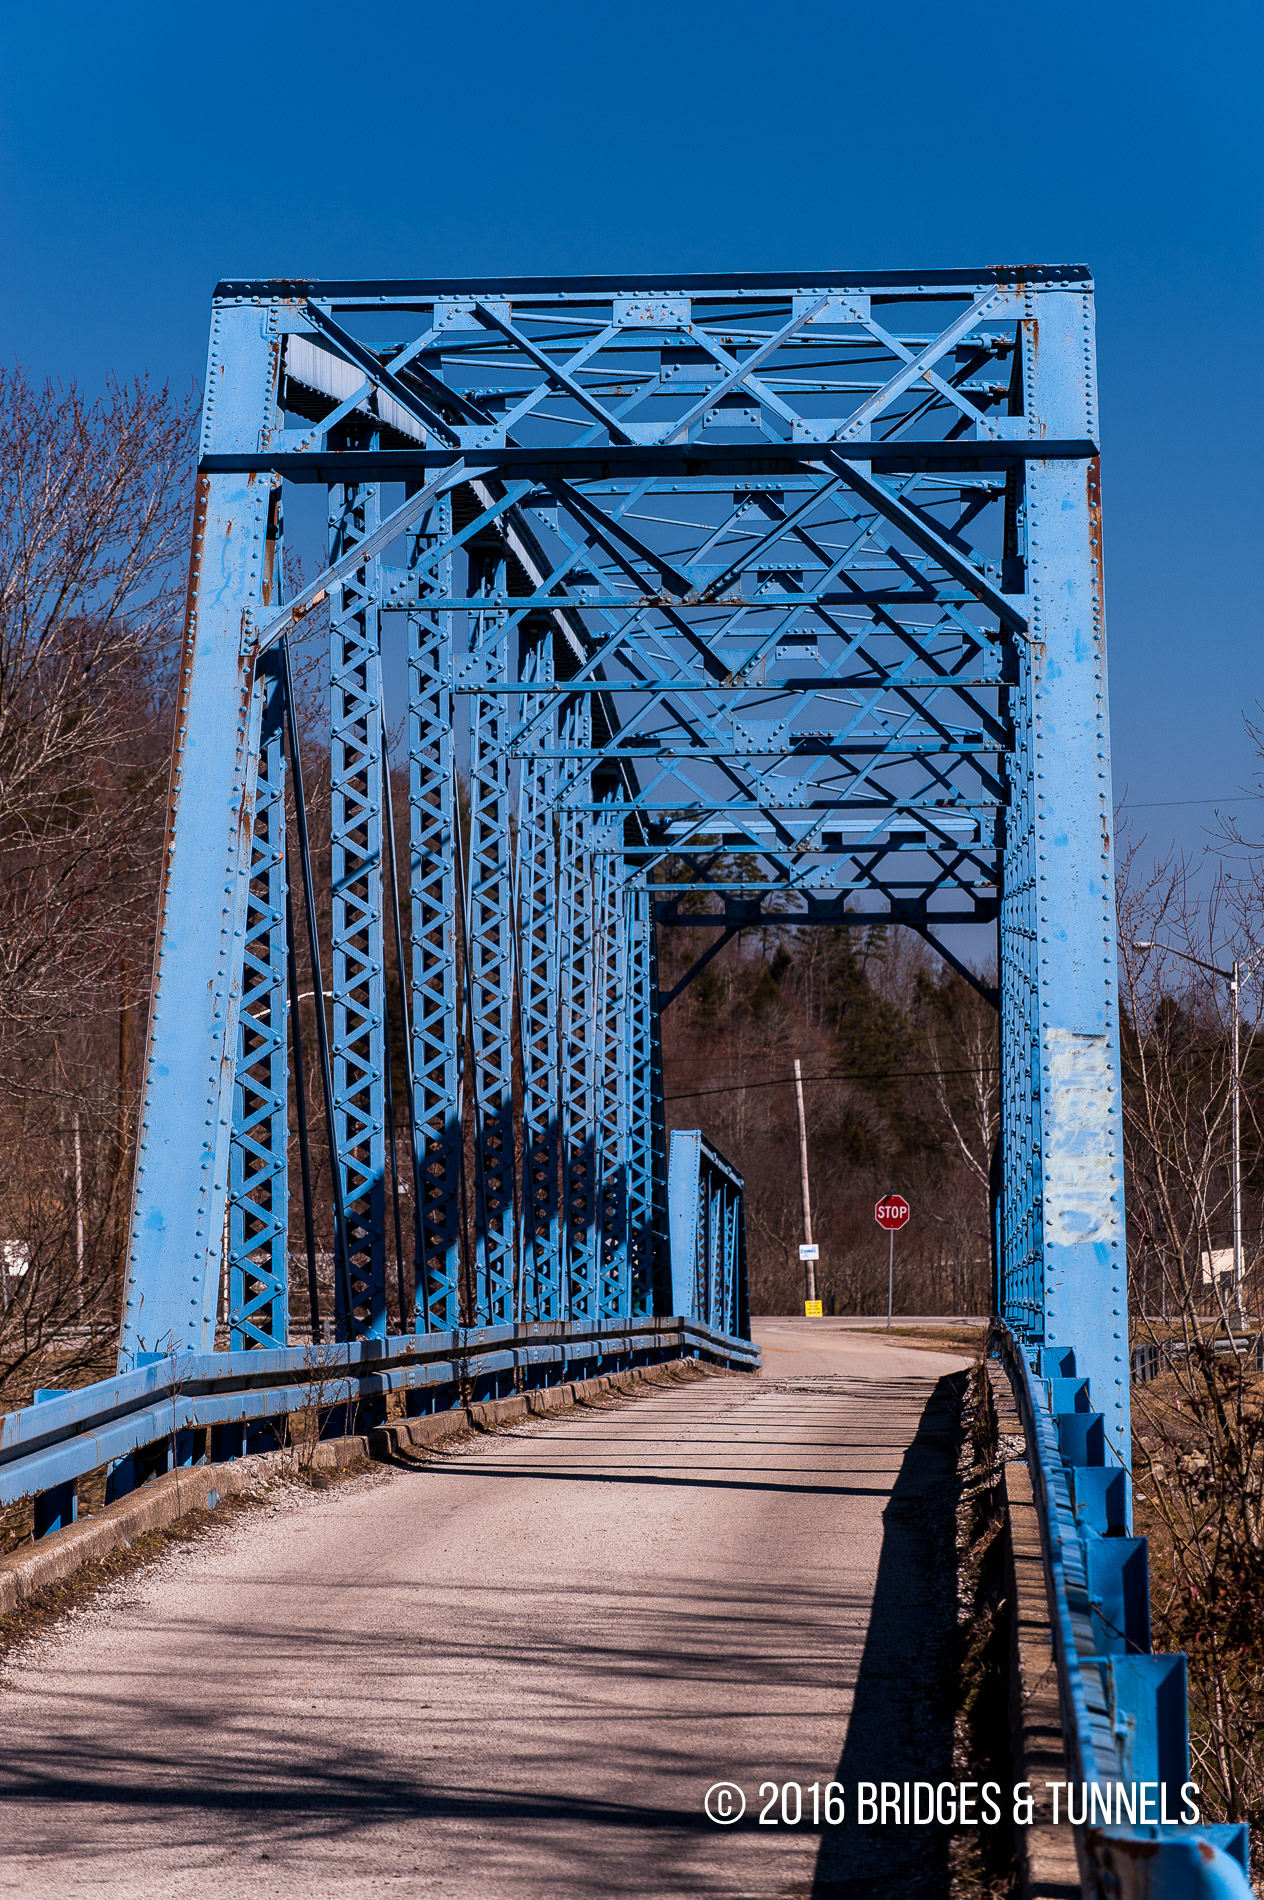 North Fork Kentucky River Bridge (Robinson Road)